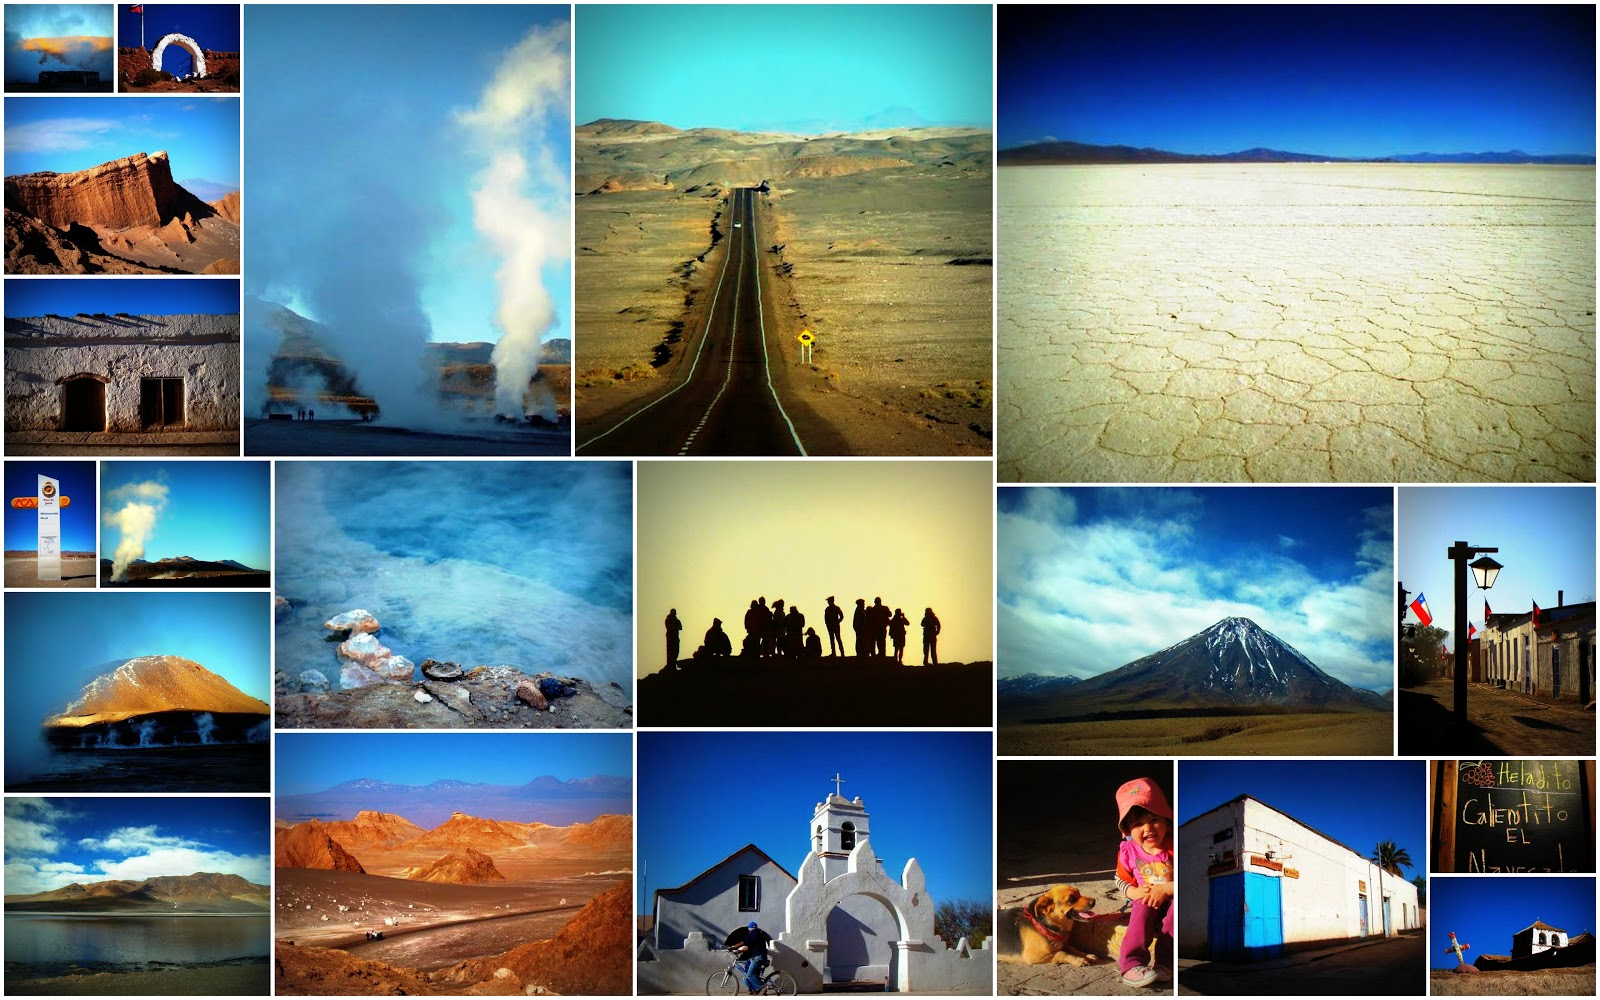 atacama collage.jpg